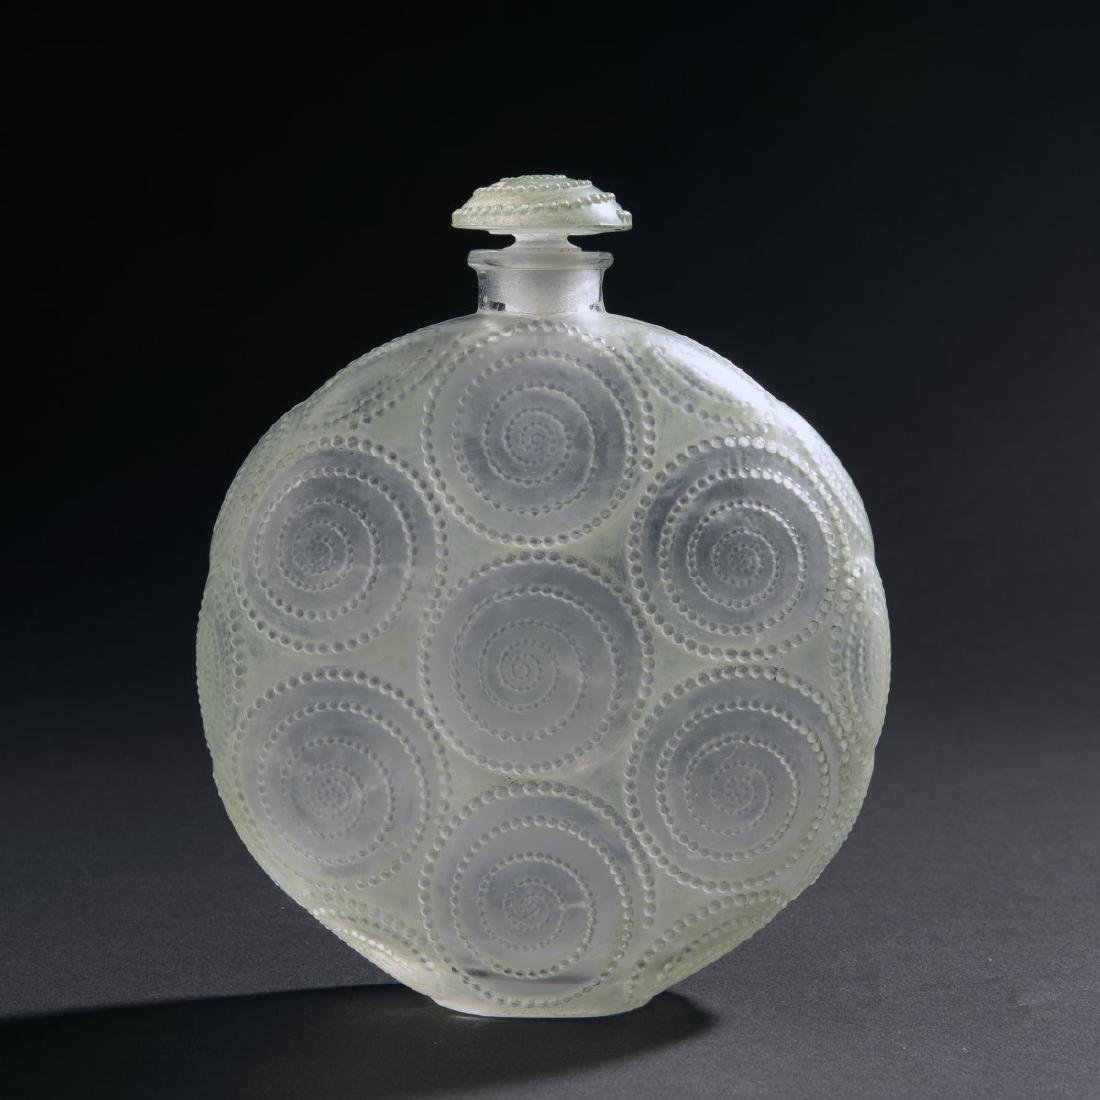 Rene Lalique, 'Relief' flacon for Forvil, 1924